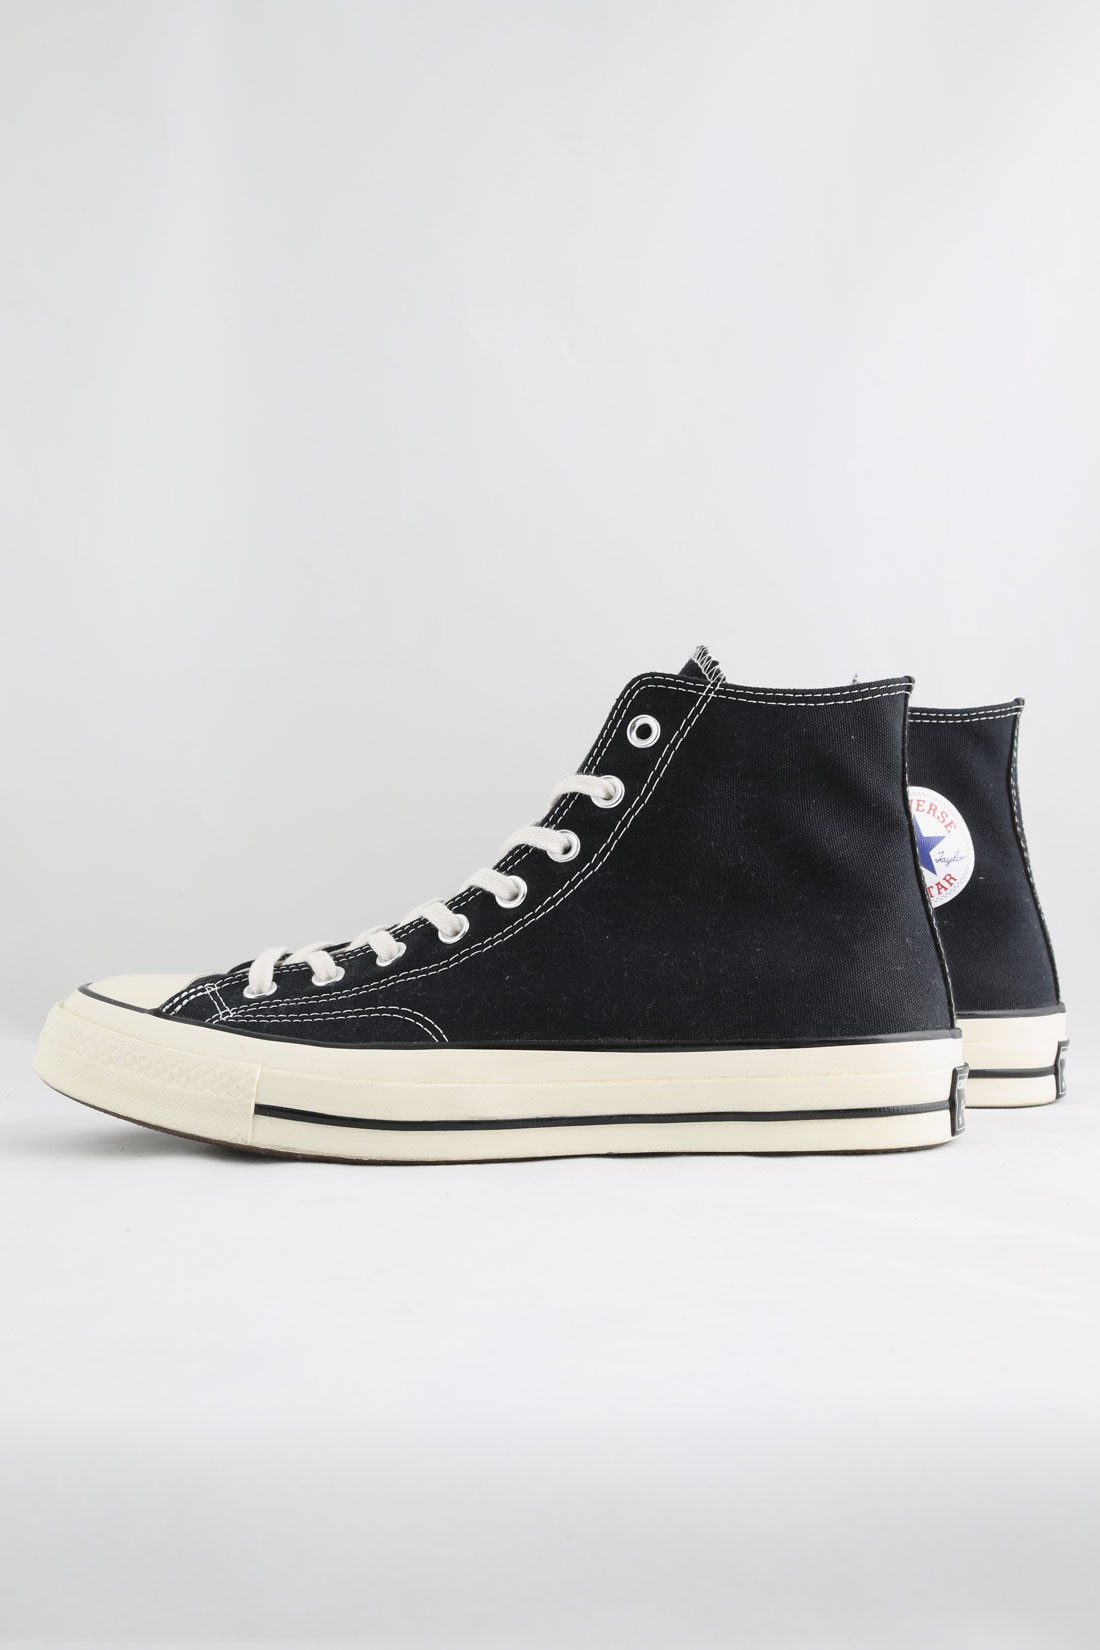 CONVERSE / Ct 70's hi Black